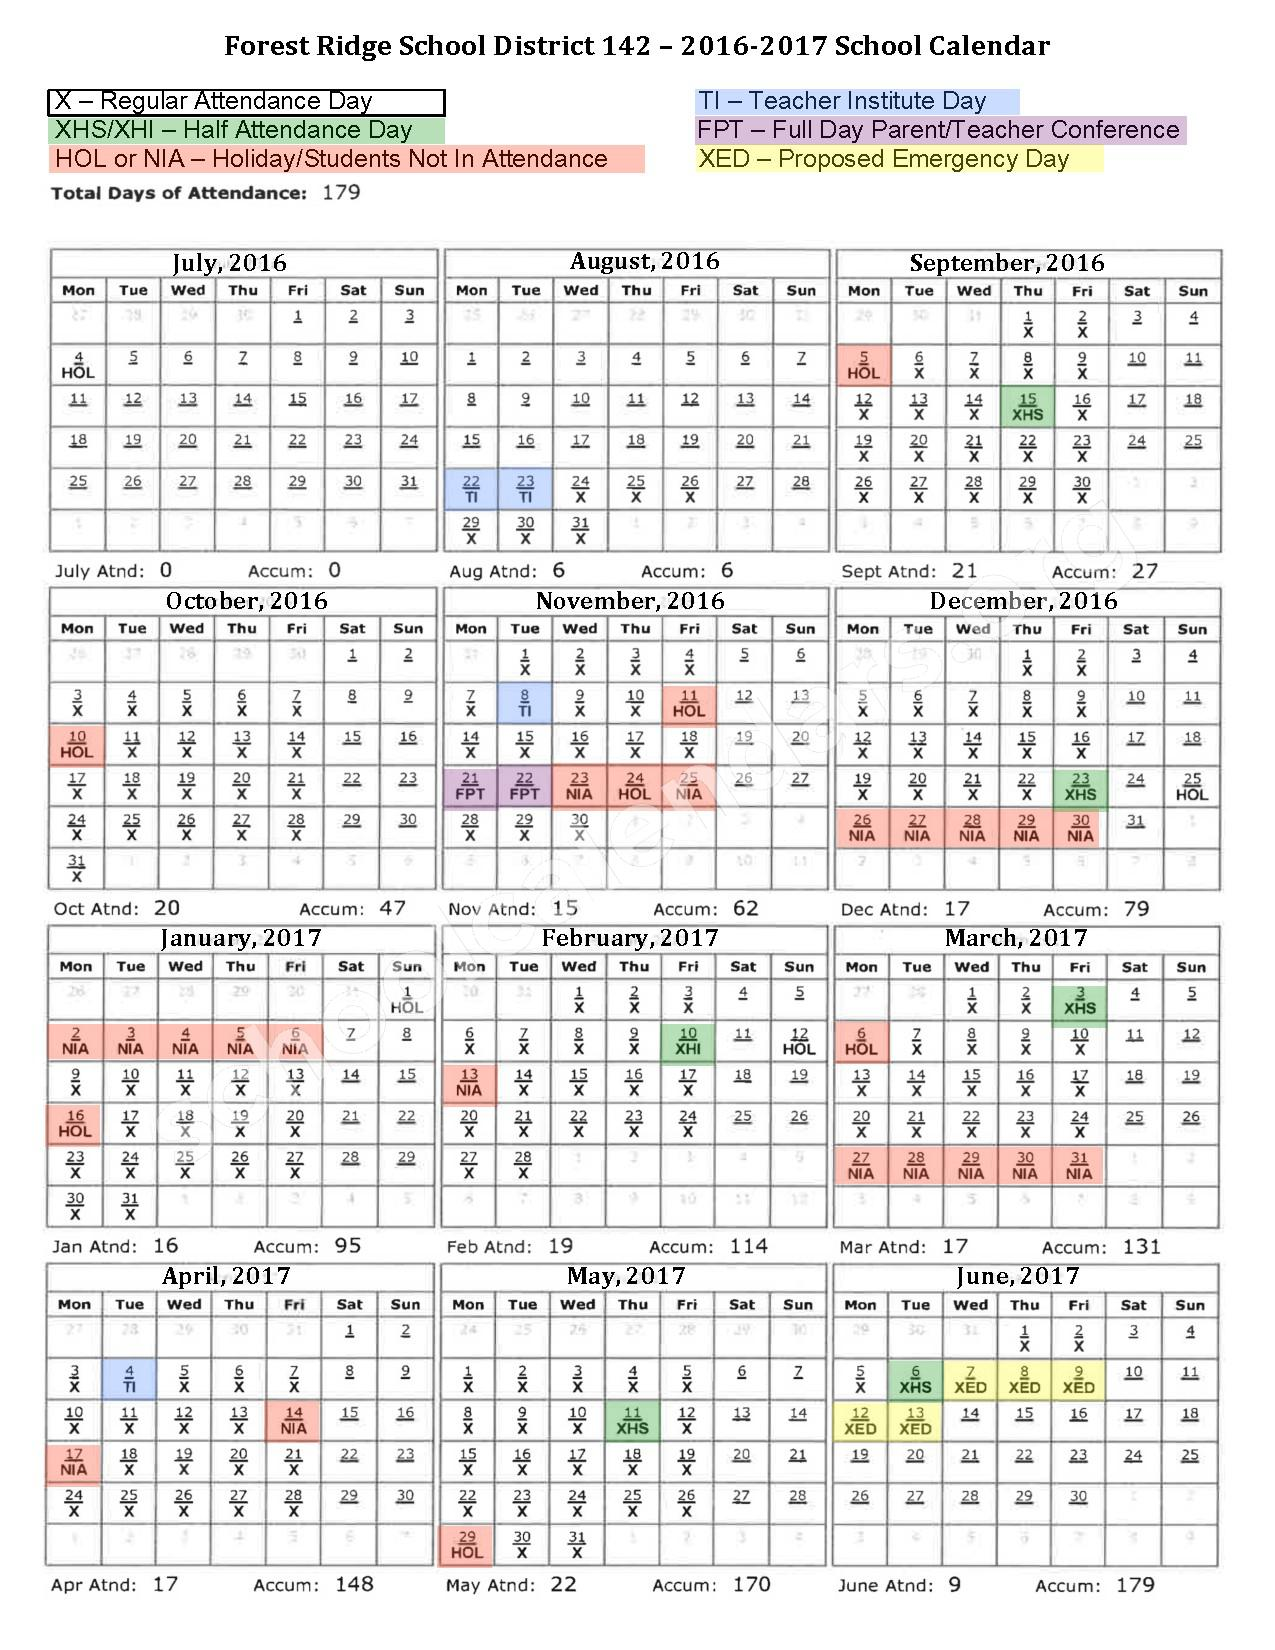 2016 - 2017 School Calendar – Forest Ridge School District 142 – page 1